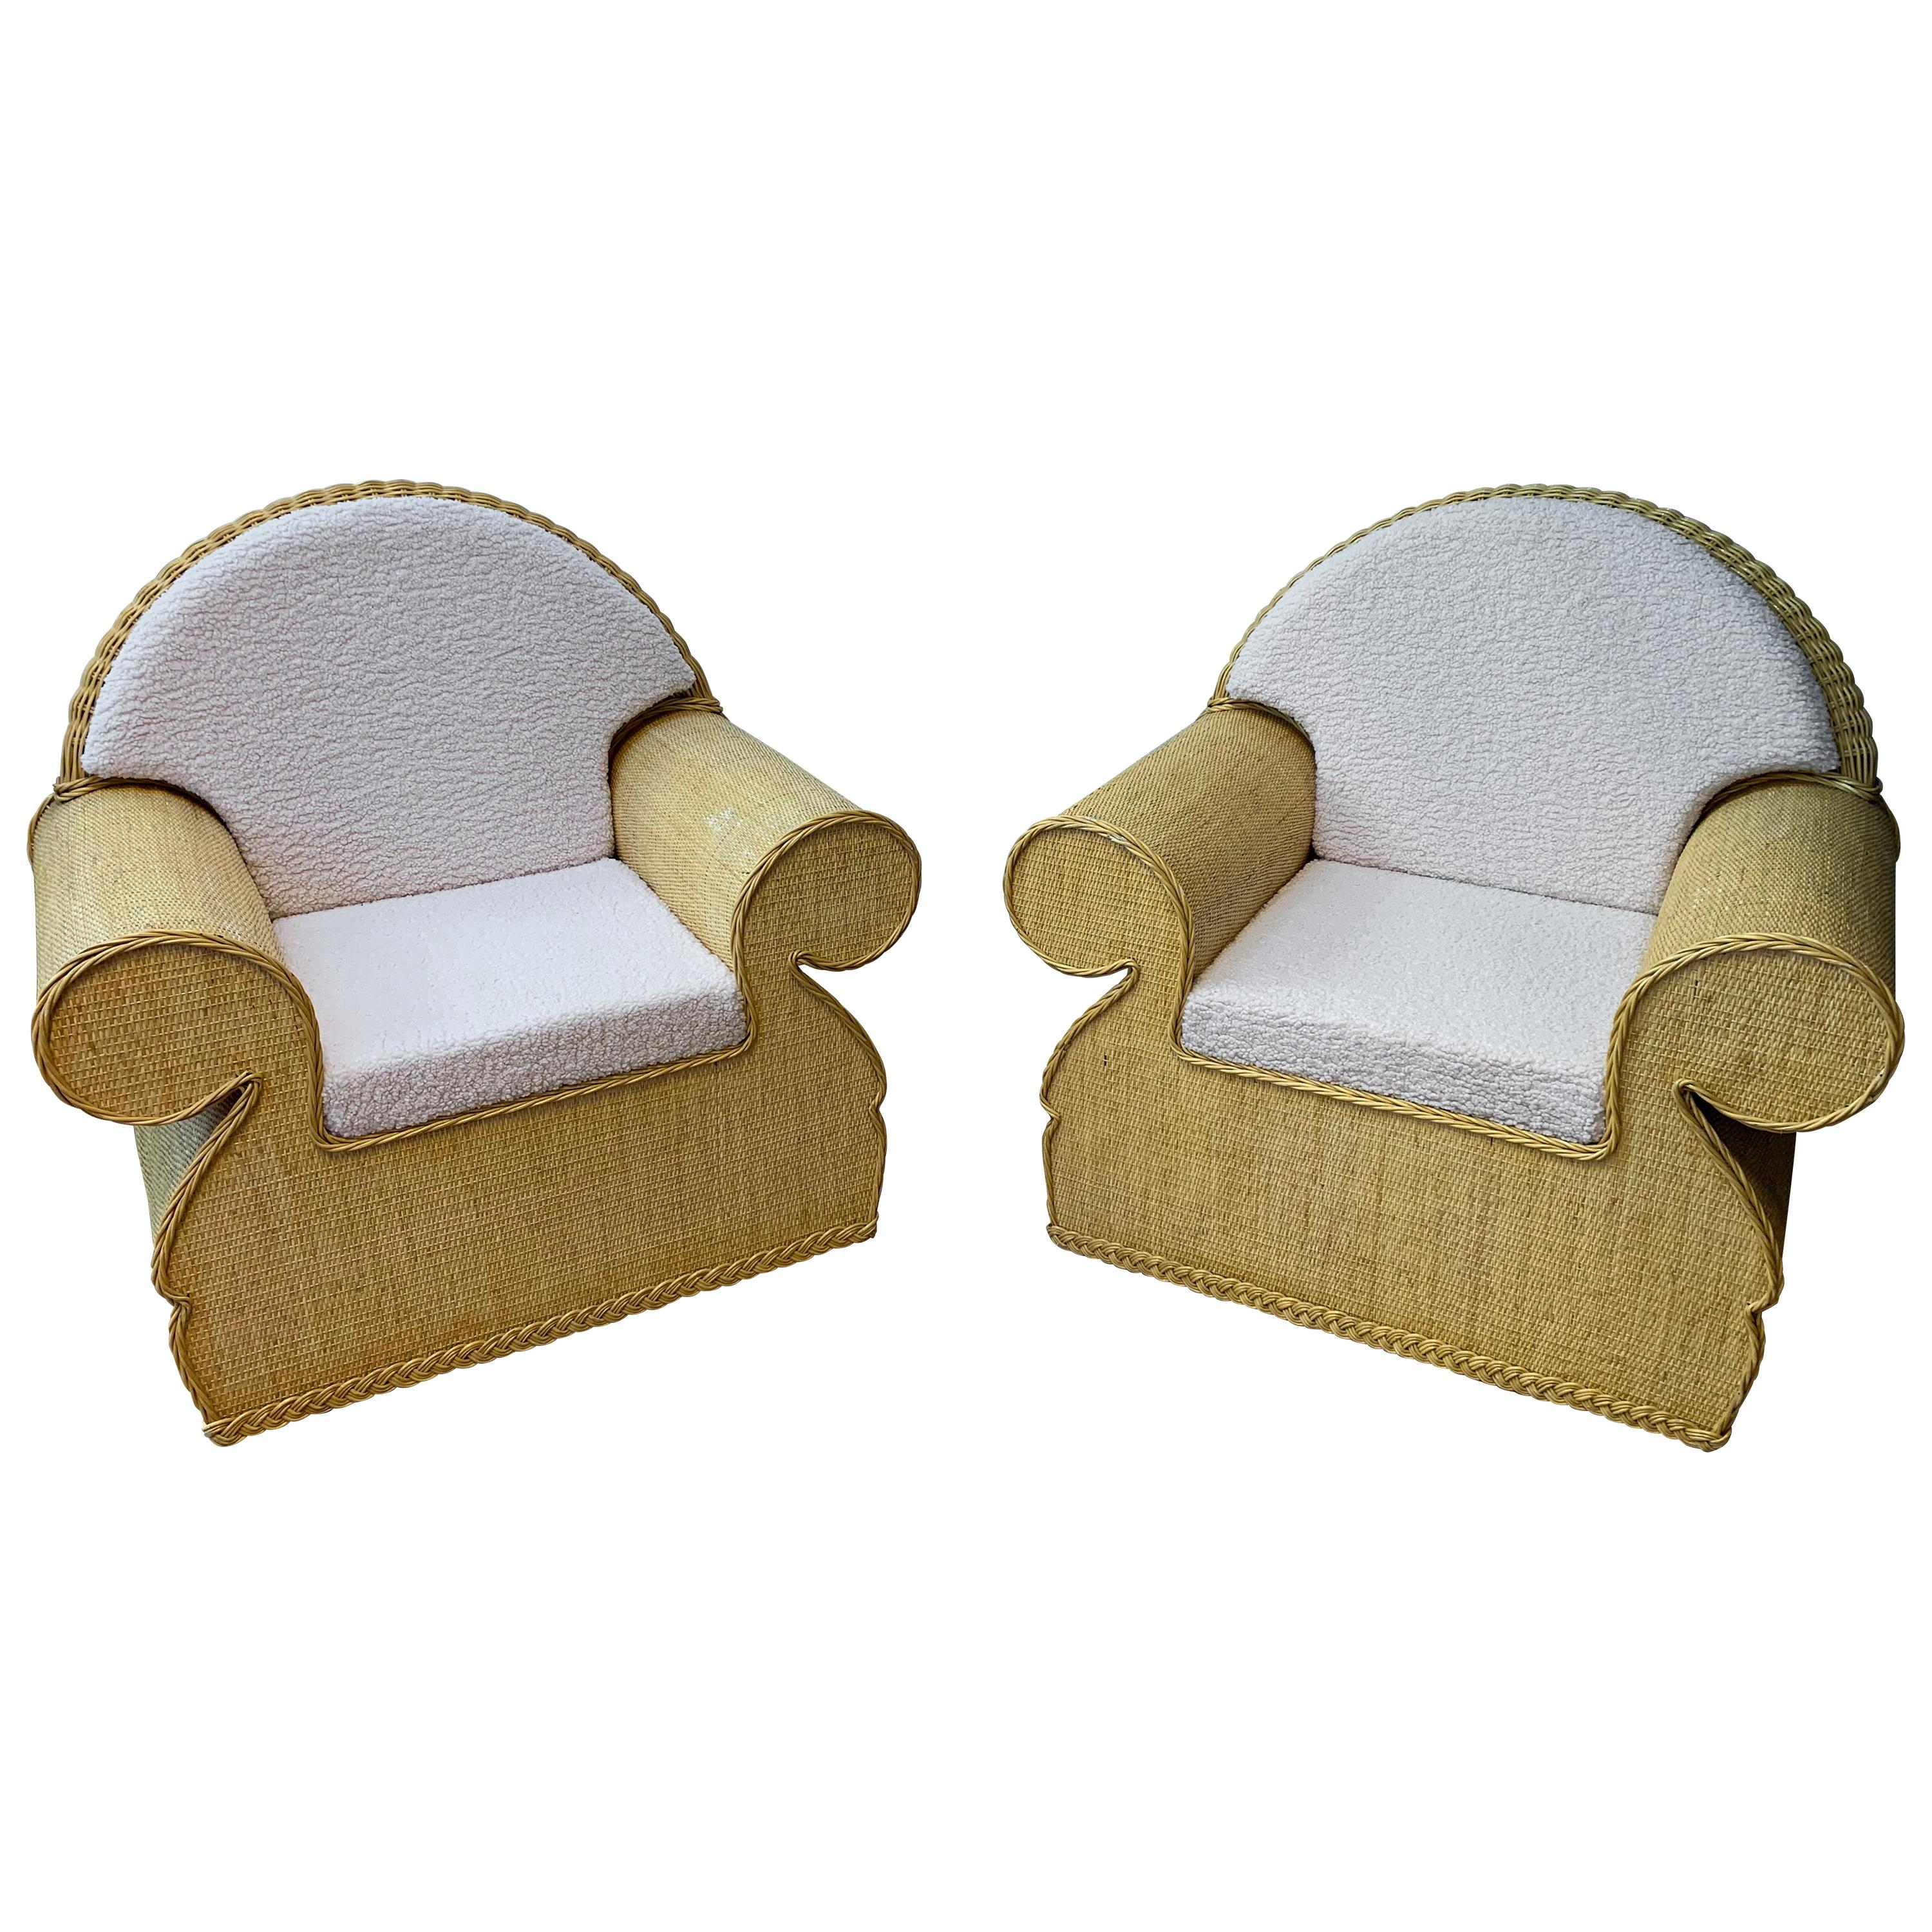 Pair of Rattan Wicker Club Armchairs, Italy, 1970s